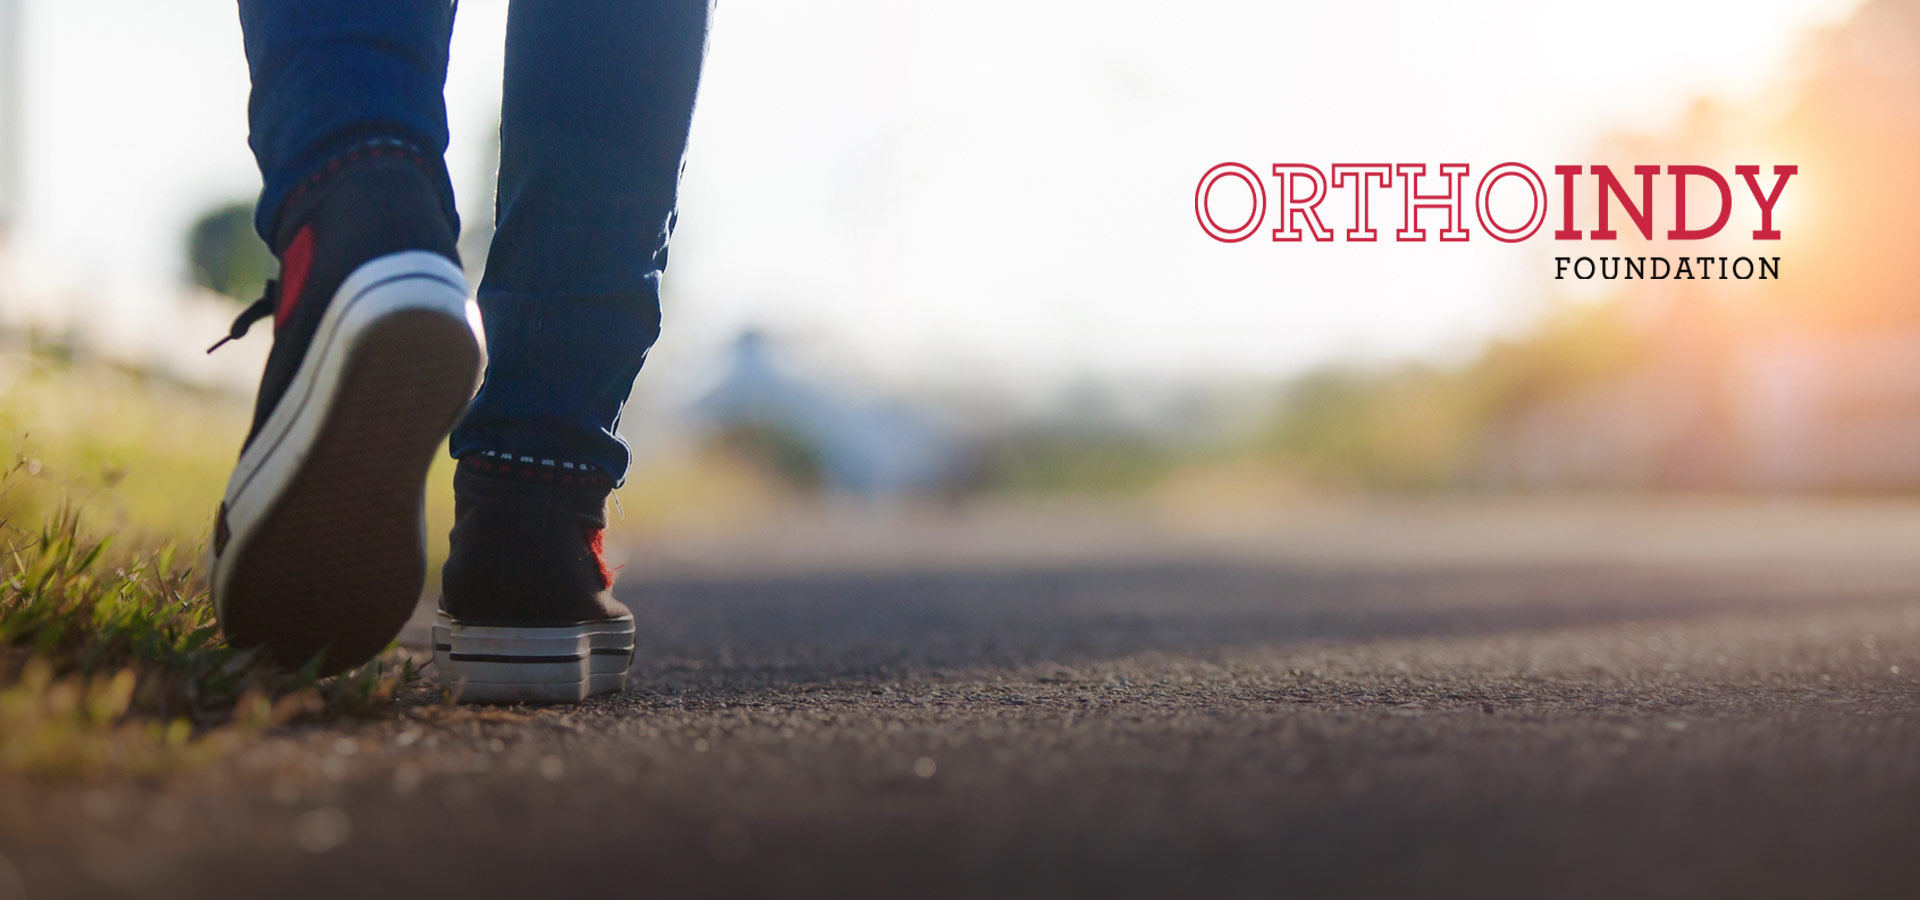 Ortho Indy Foundation Supports Accessible Walking Path